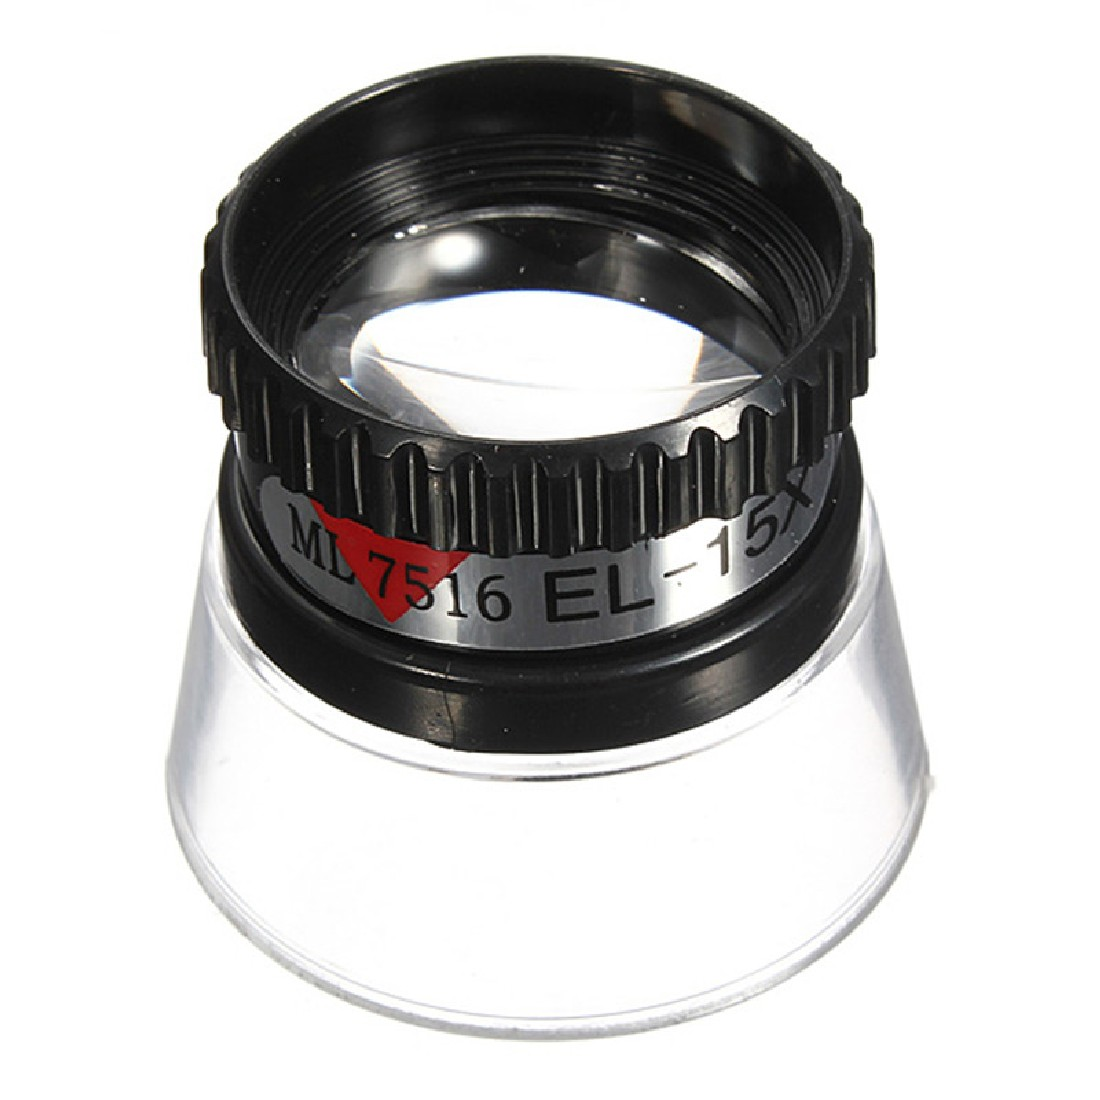 Magnifying Glass 22mm 15X Monocular Loupe Lens Jeweler Tool Eye Magnifier Watch Repair Tool Black Portable Tools